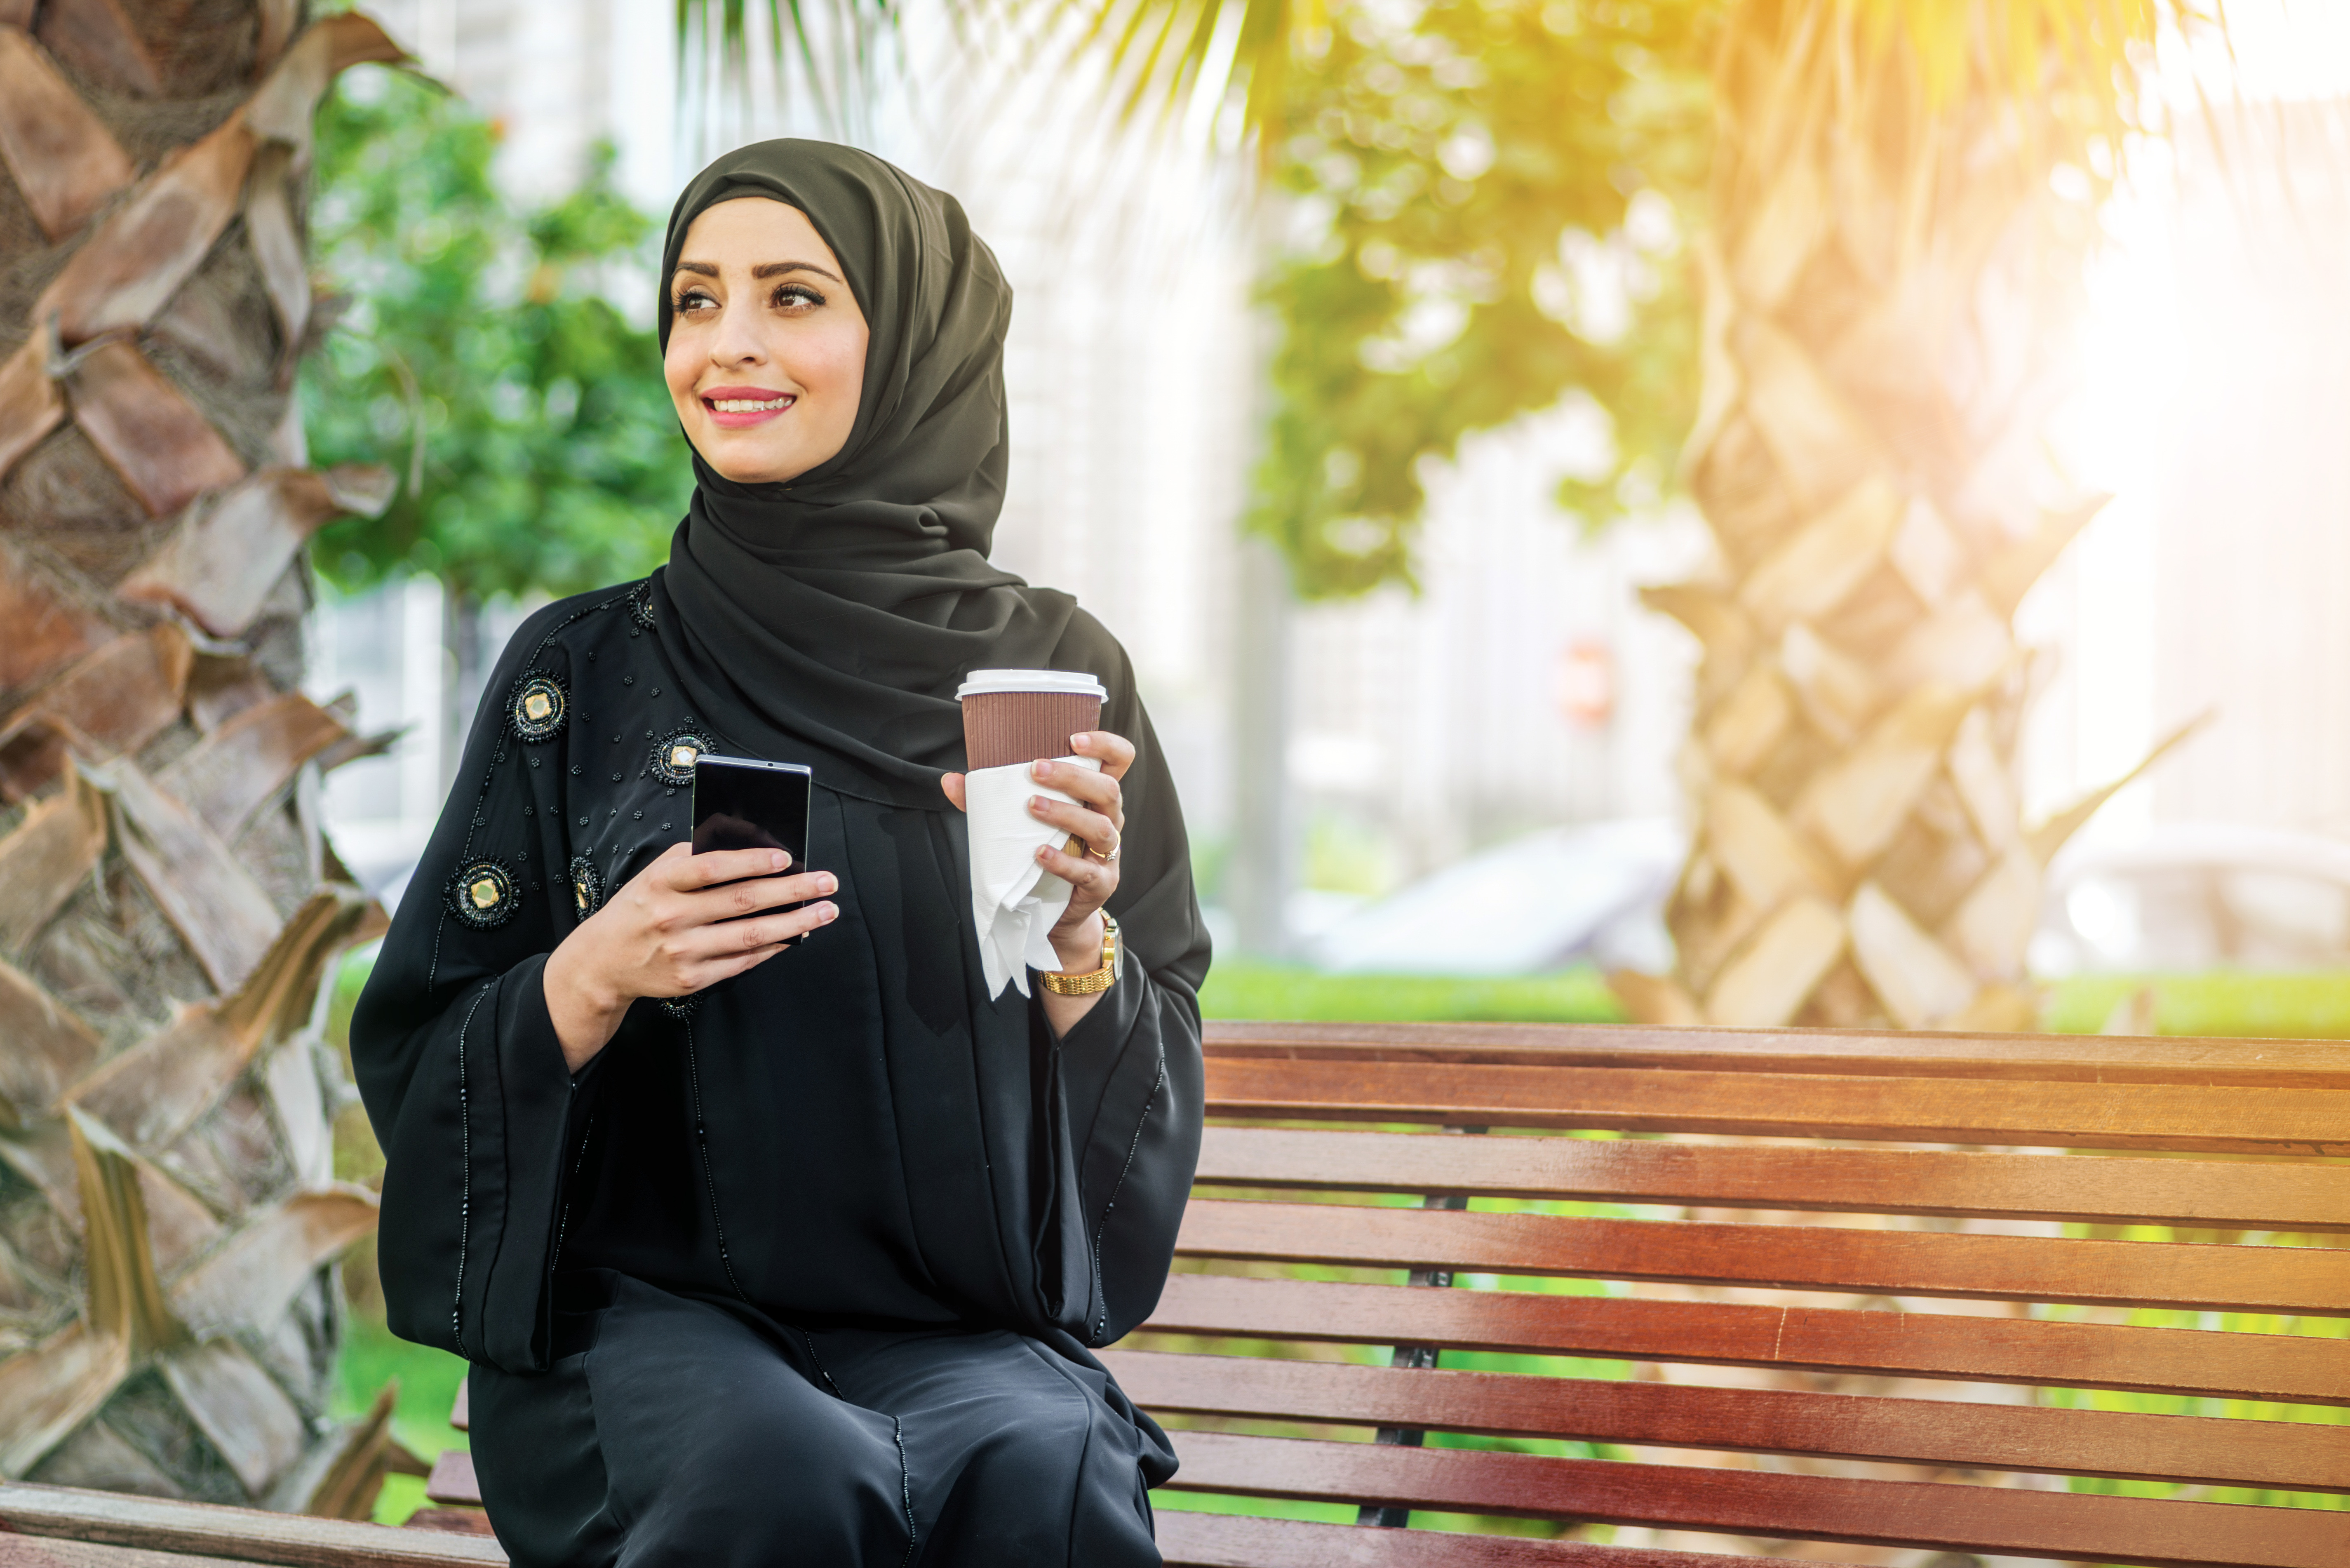 A woman sitting on a bench smiling holding a phone and coffee cup